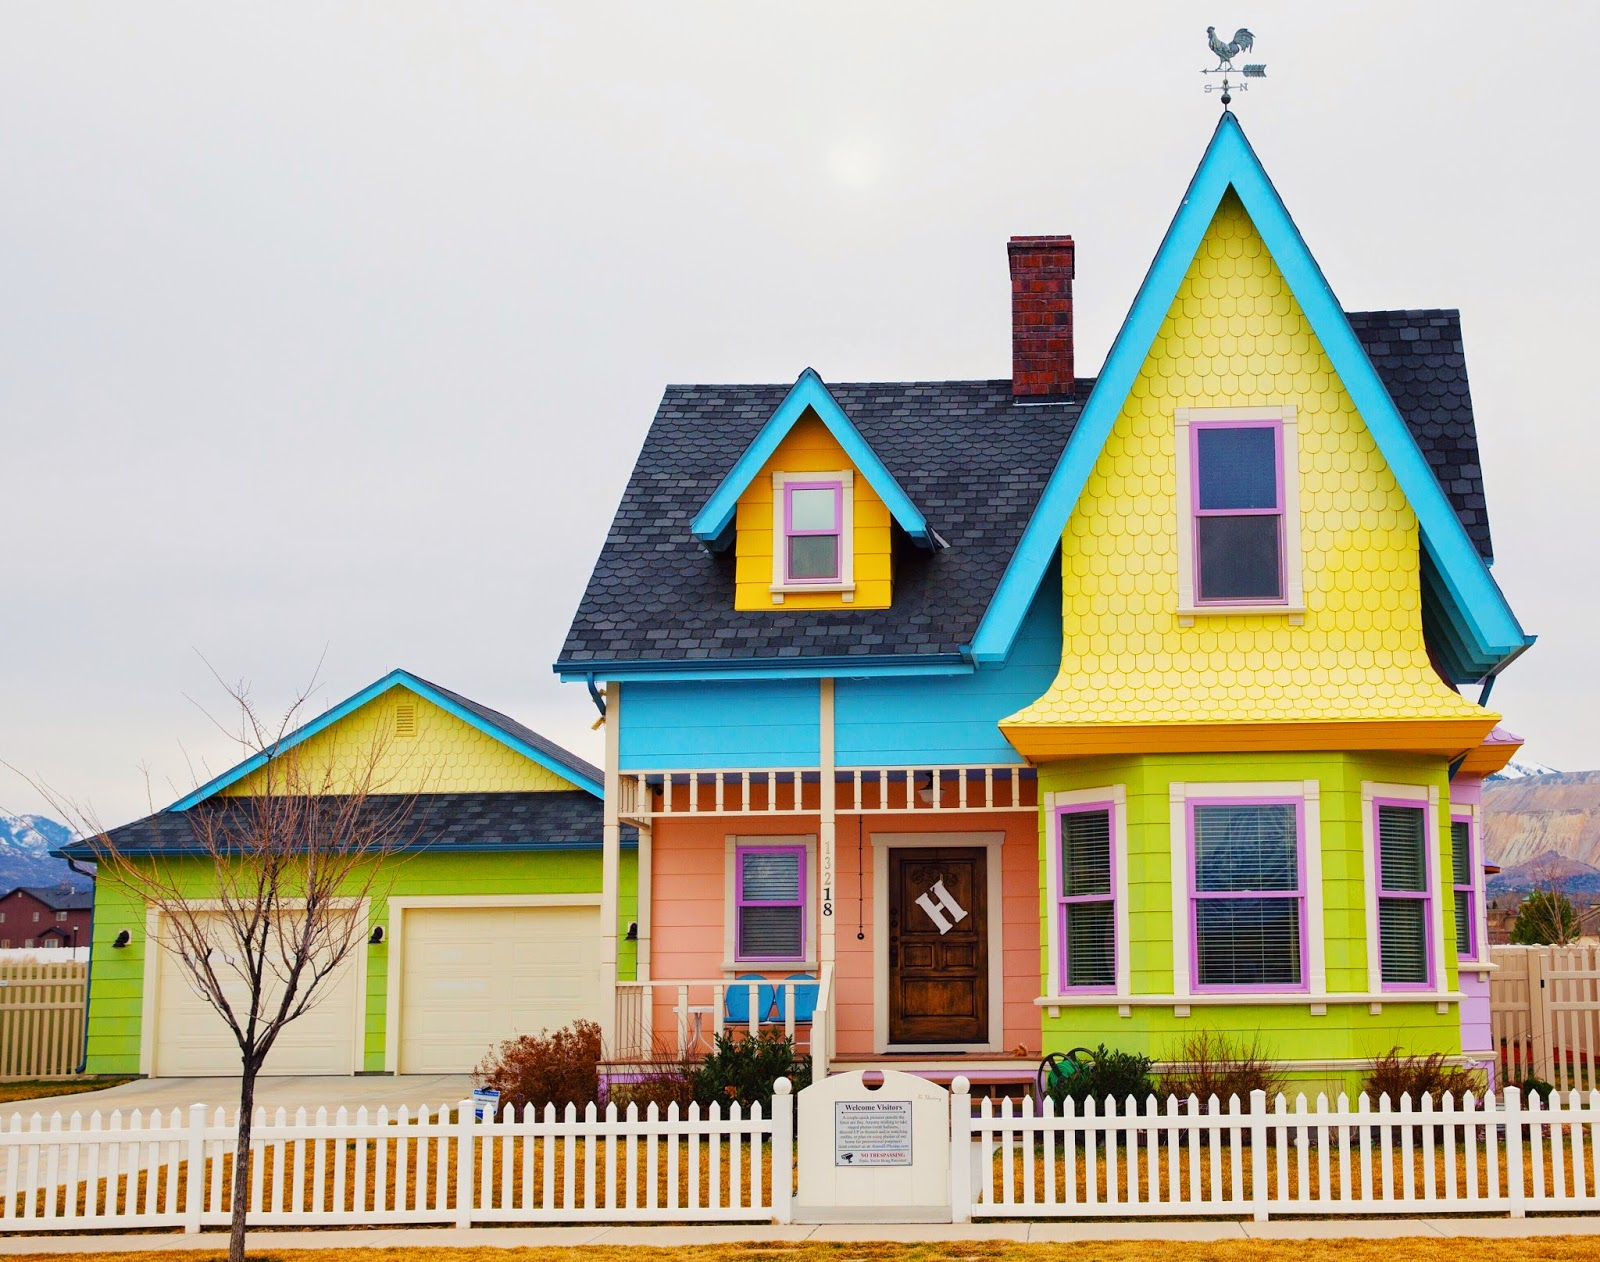 up home - 28 images - pixar s up house after sundance, the ...